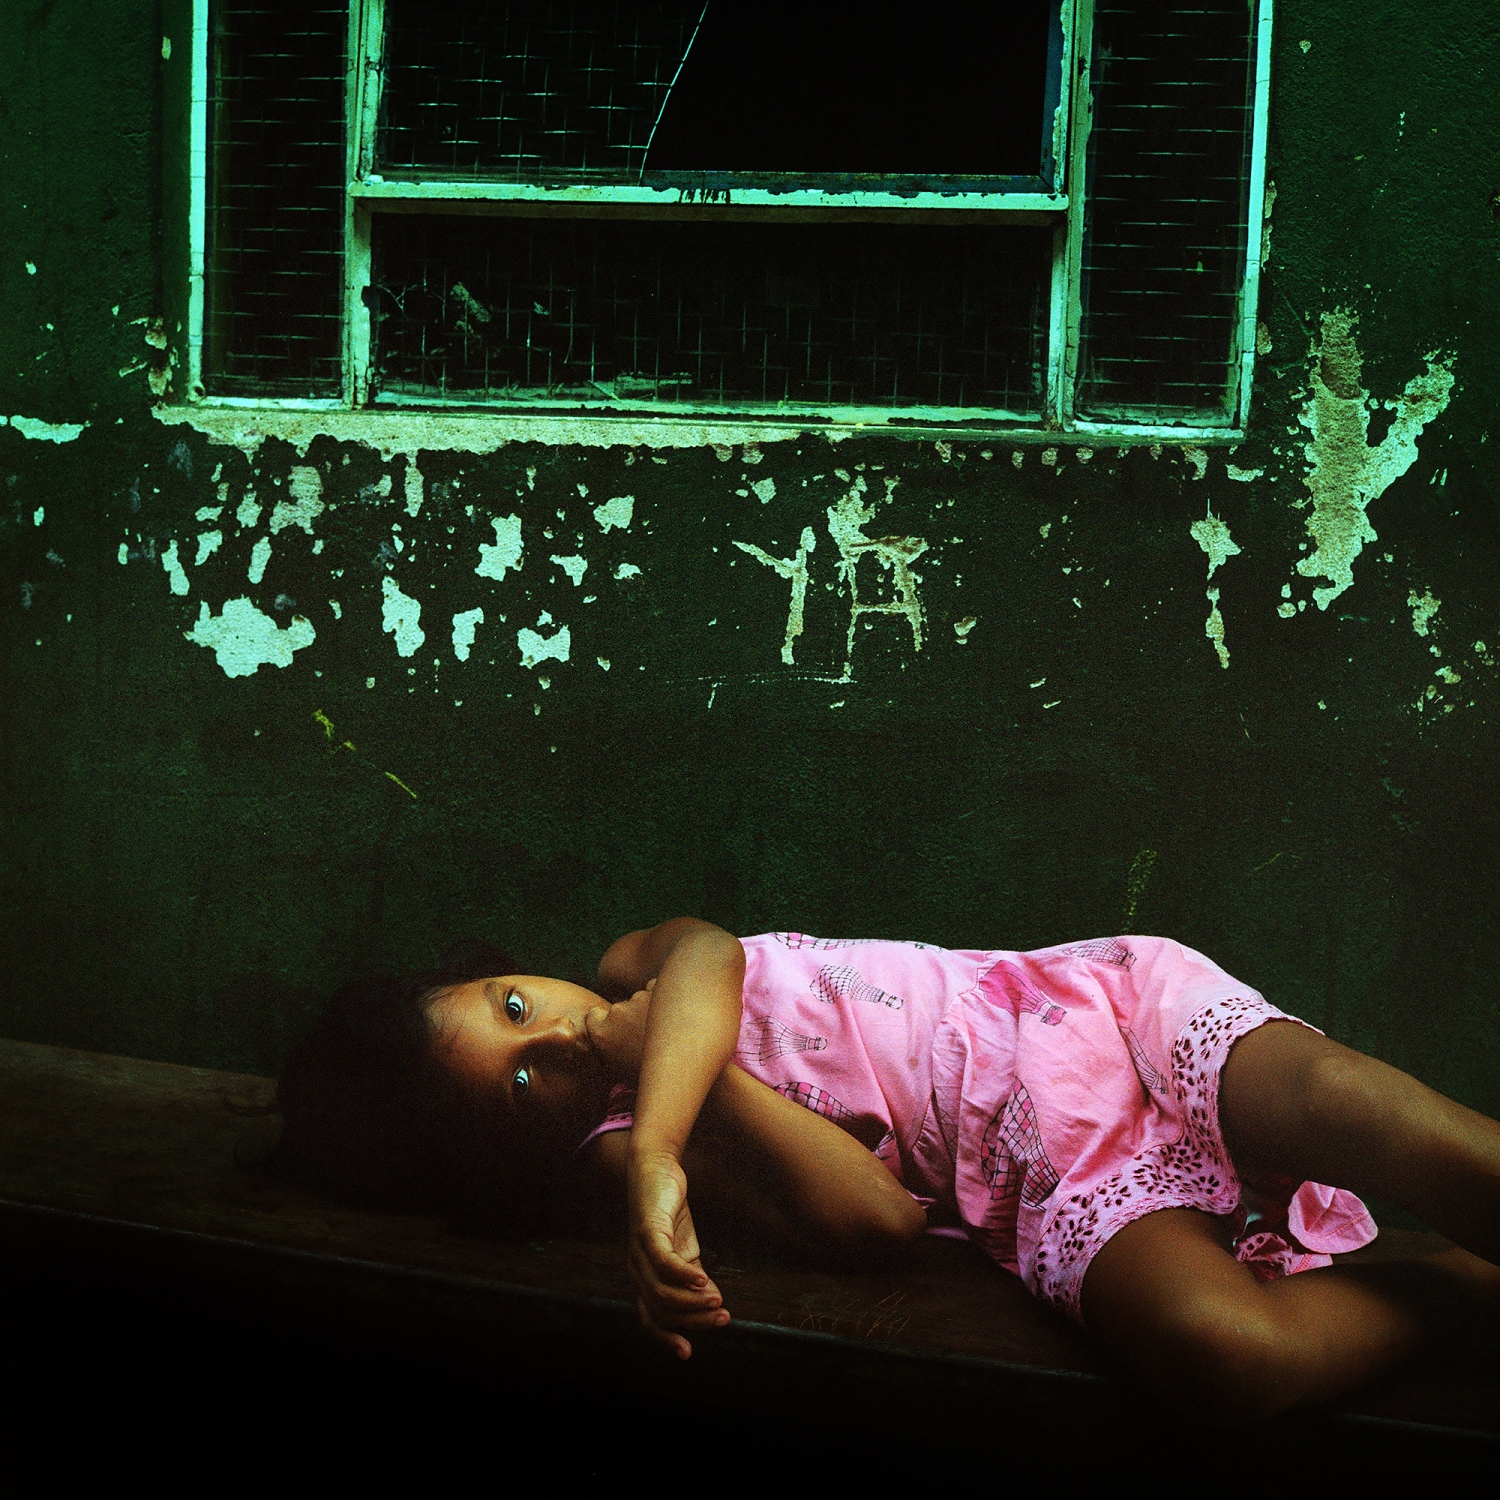 February 21, 2014. A Xipaya girl rests while staying at the Casa do Indio in Altamira. The Casa is a run down building where indigenous people stay while visiting the city. They visit to access government services, for medical care, and often to sell the natural products they harvest from the forest.  /Aaron Vincent Elkaim